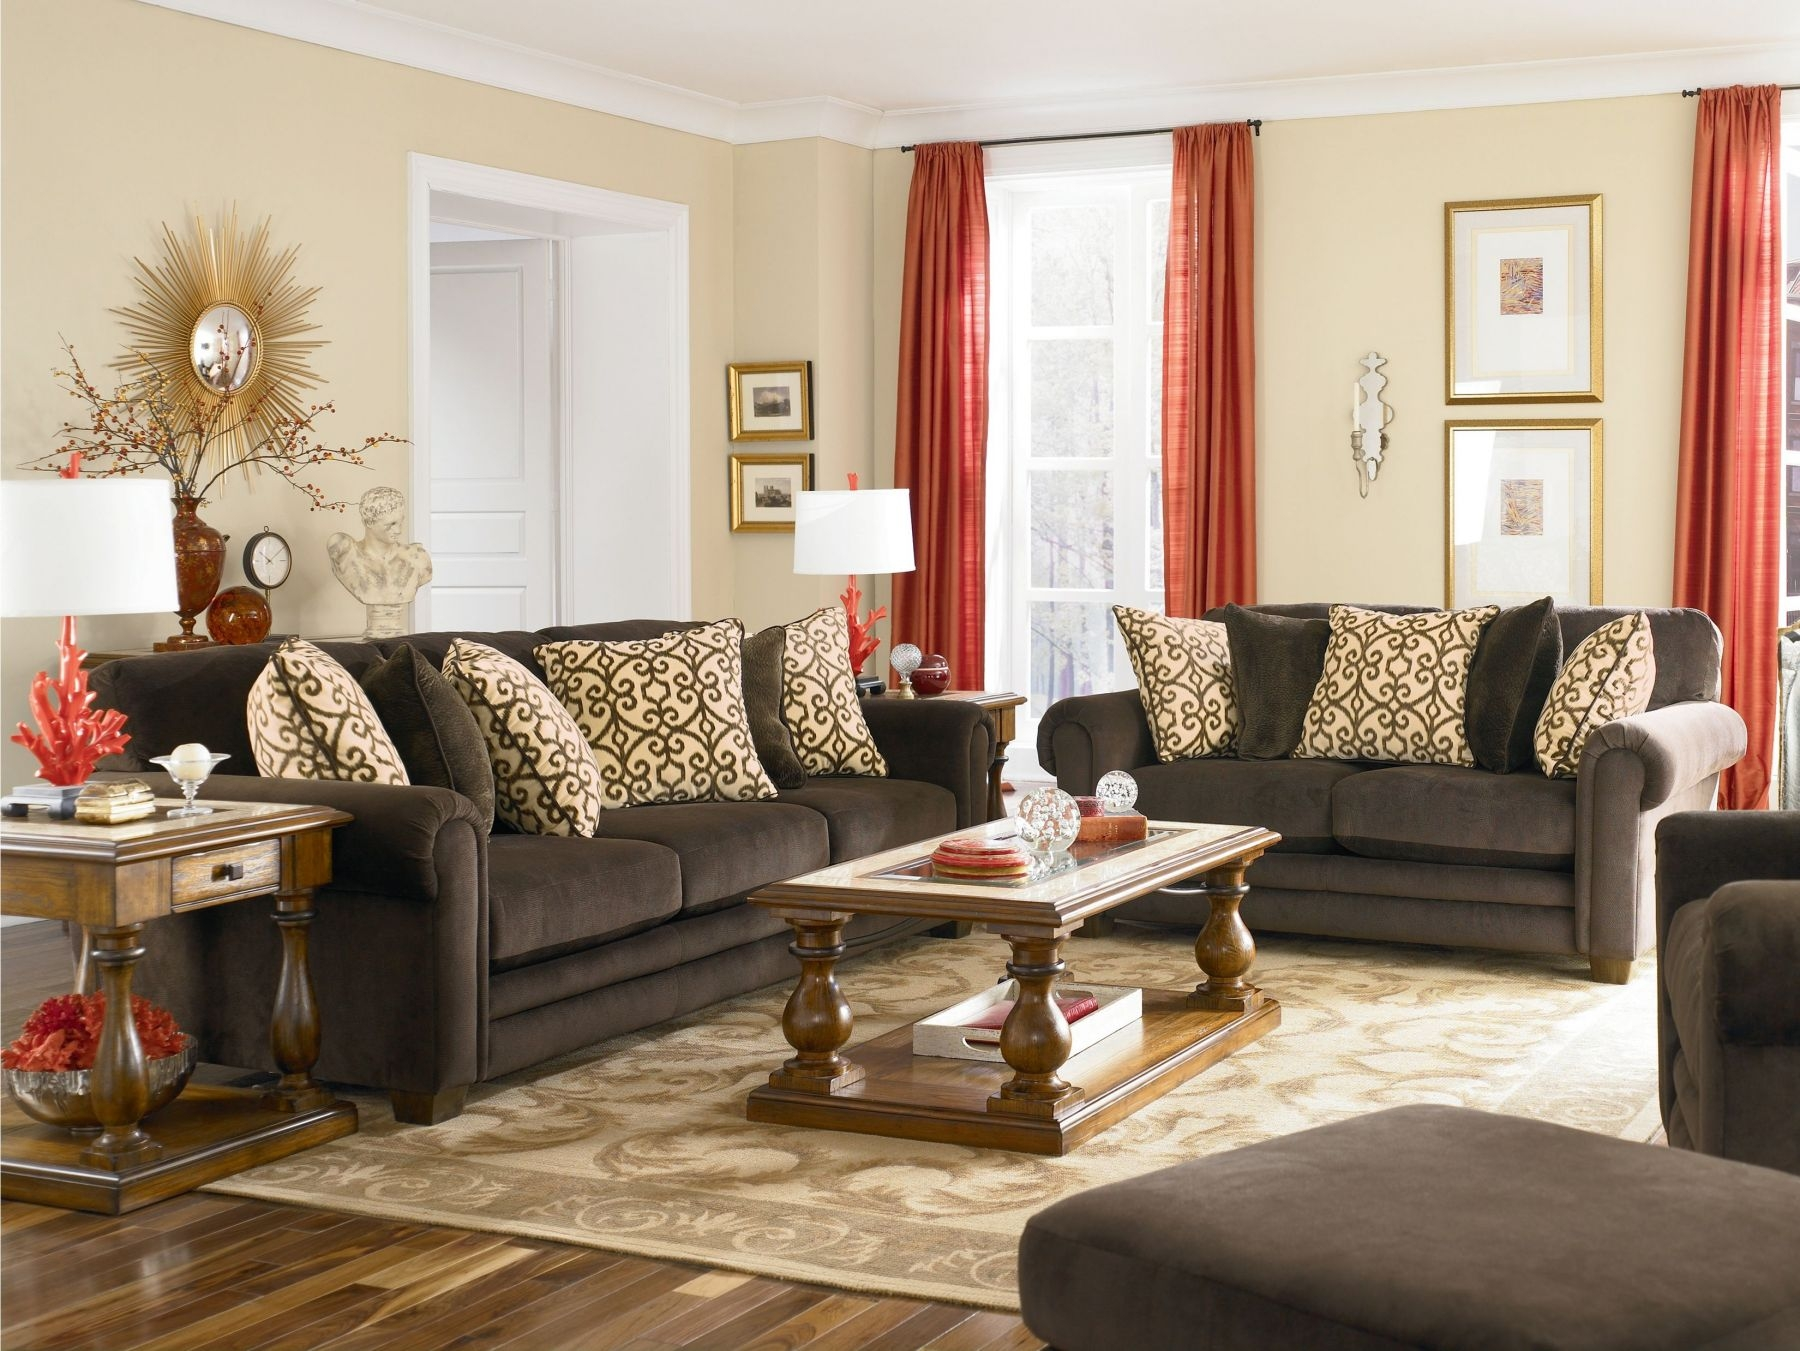 7 Images What Color Curtains With Dark Gray Couch And View ...